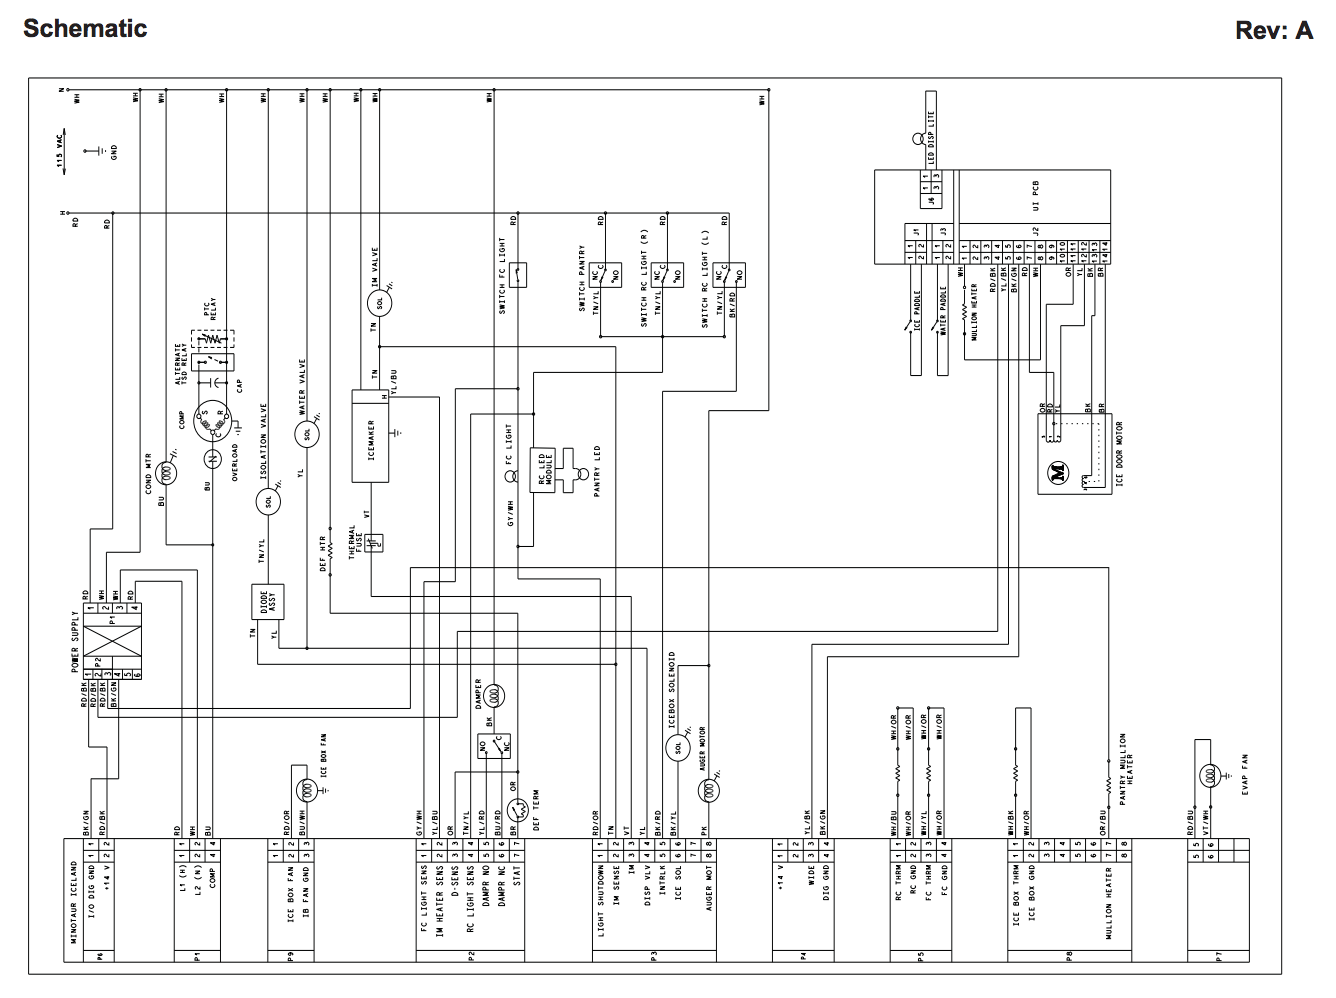 I Need A Wiring Diagram For A Kitchenaid Refrigerator